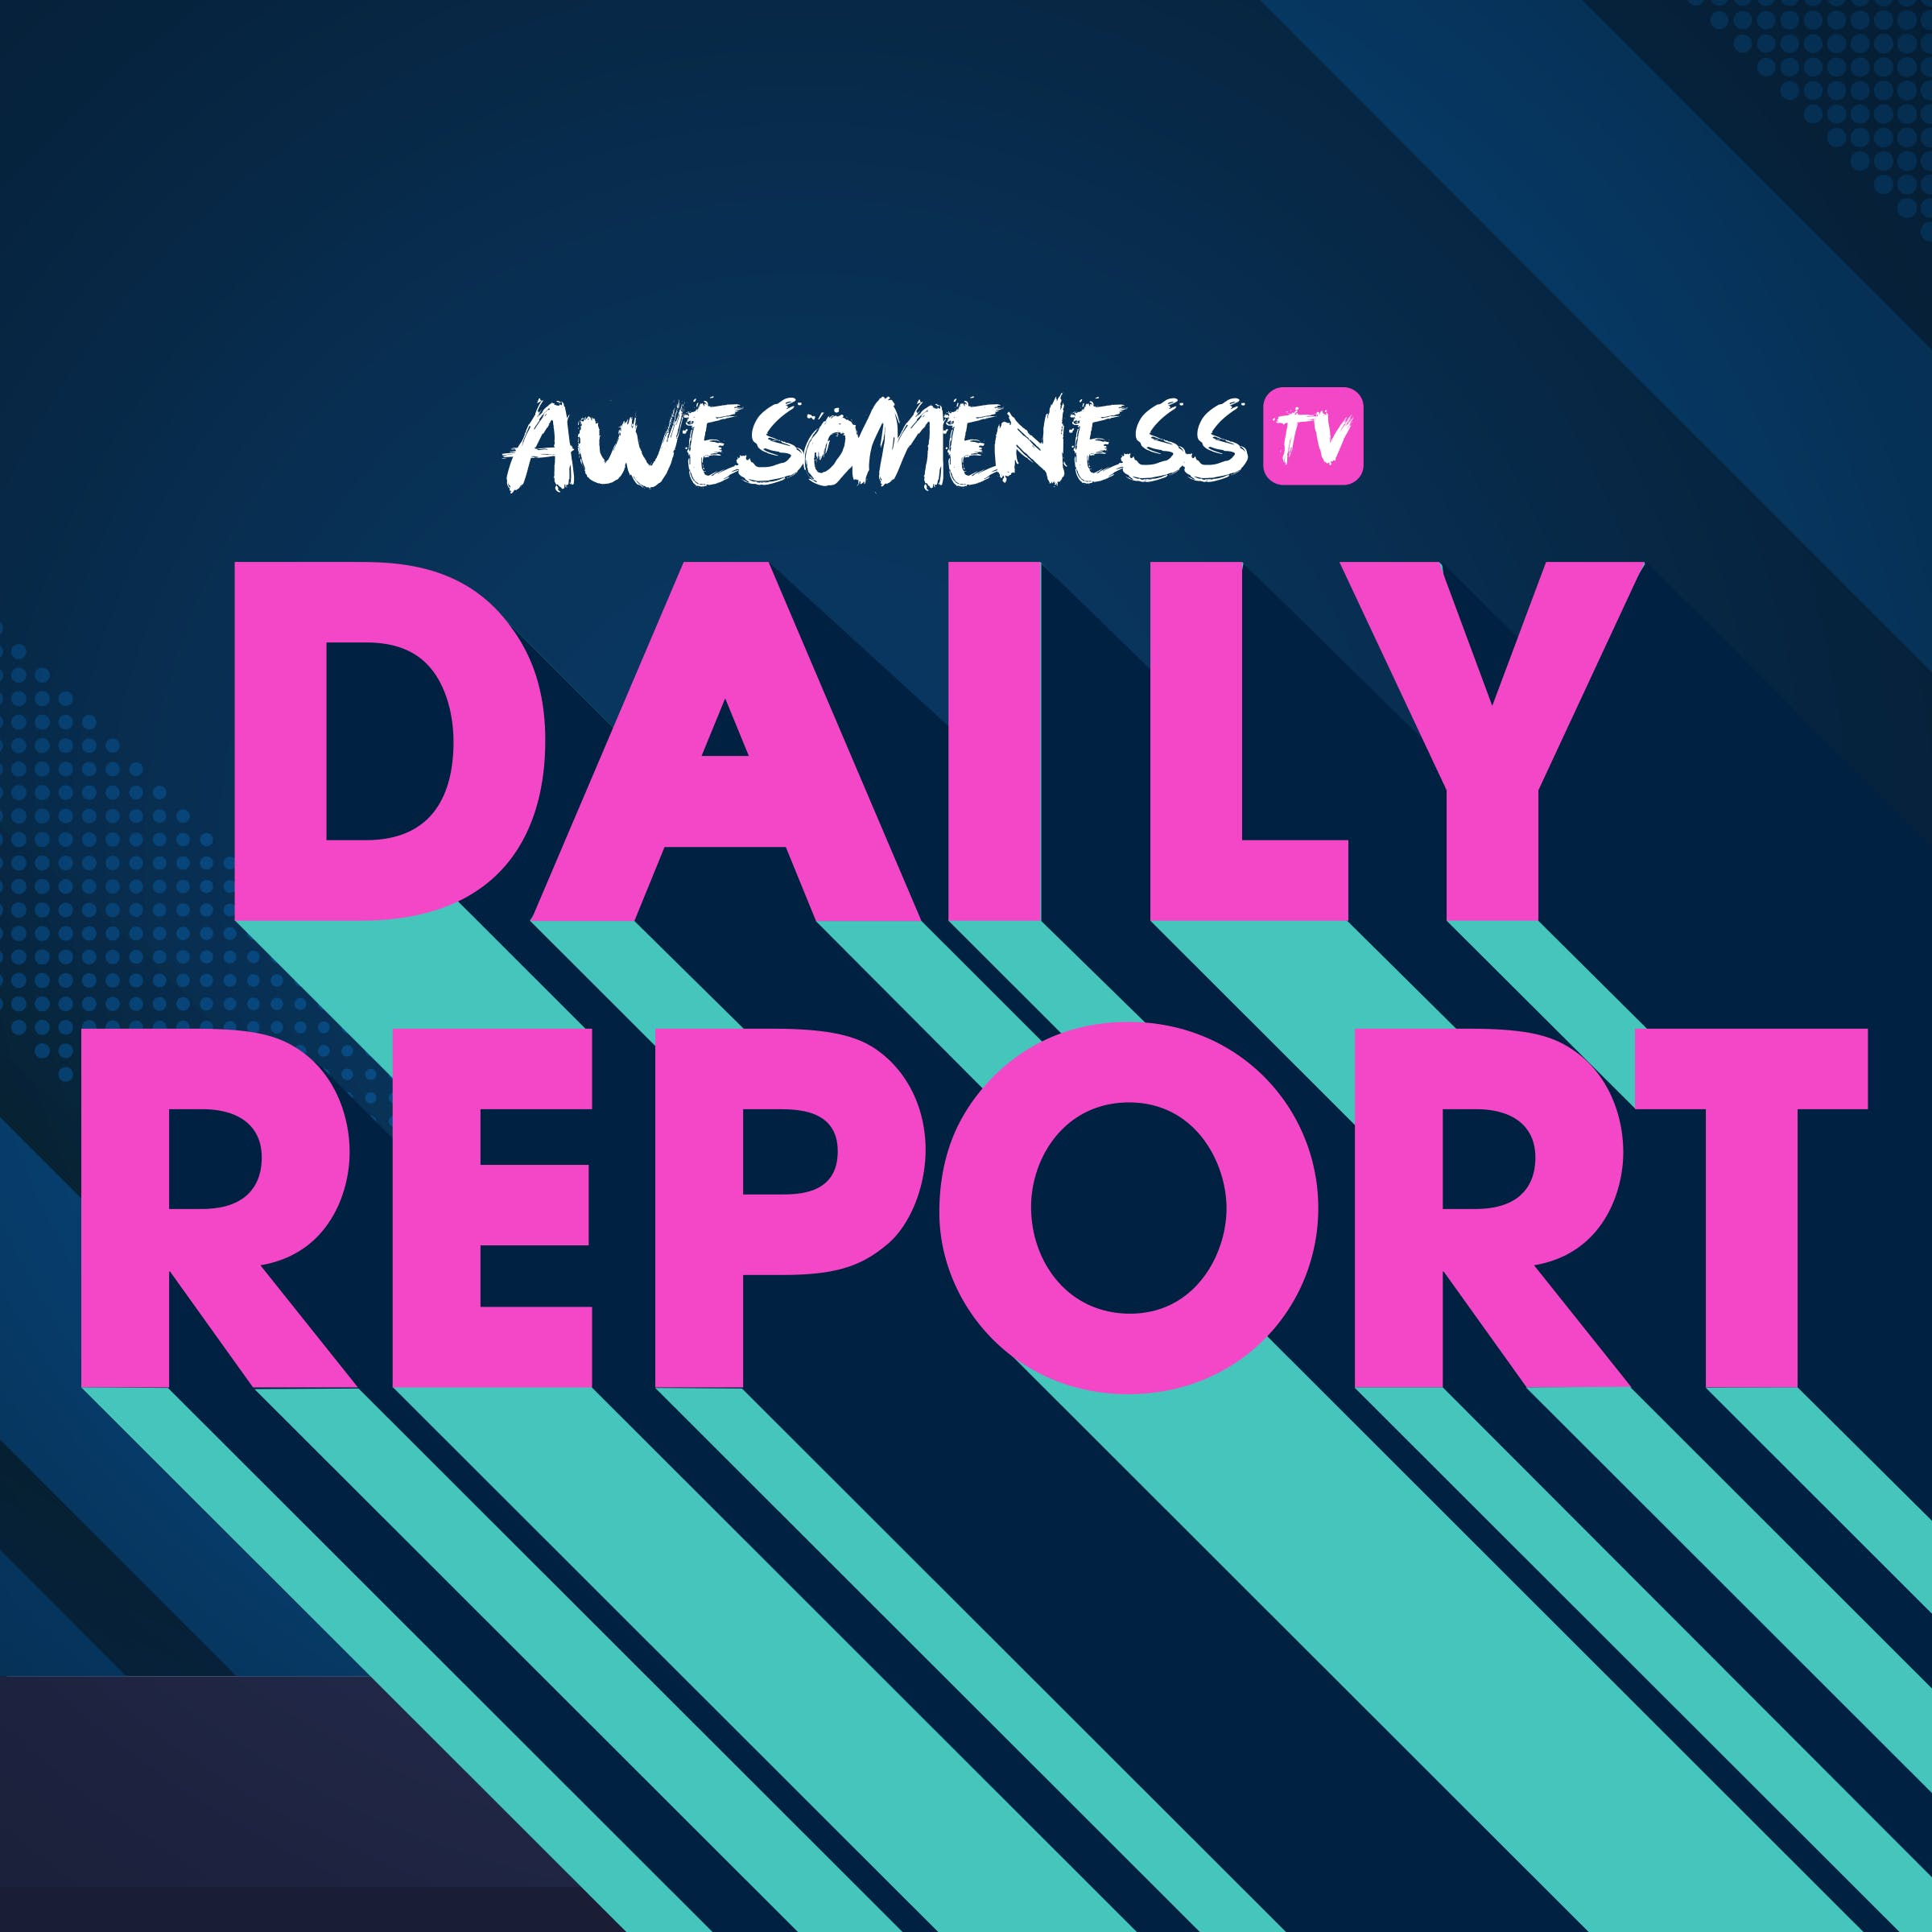 Introducing AwesomenessTV's Daily Report